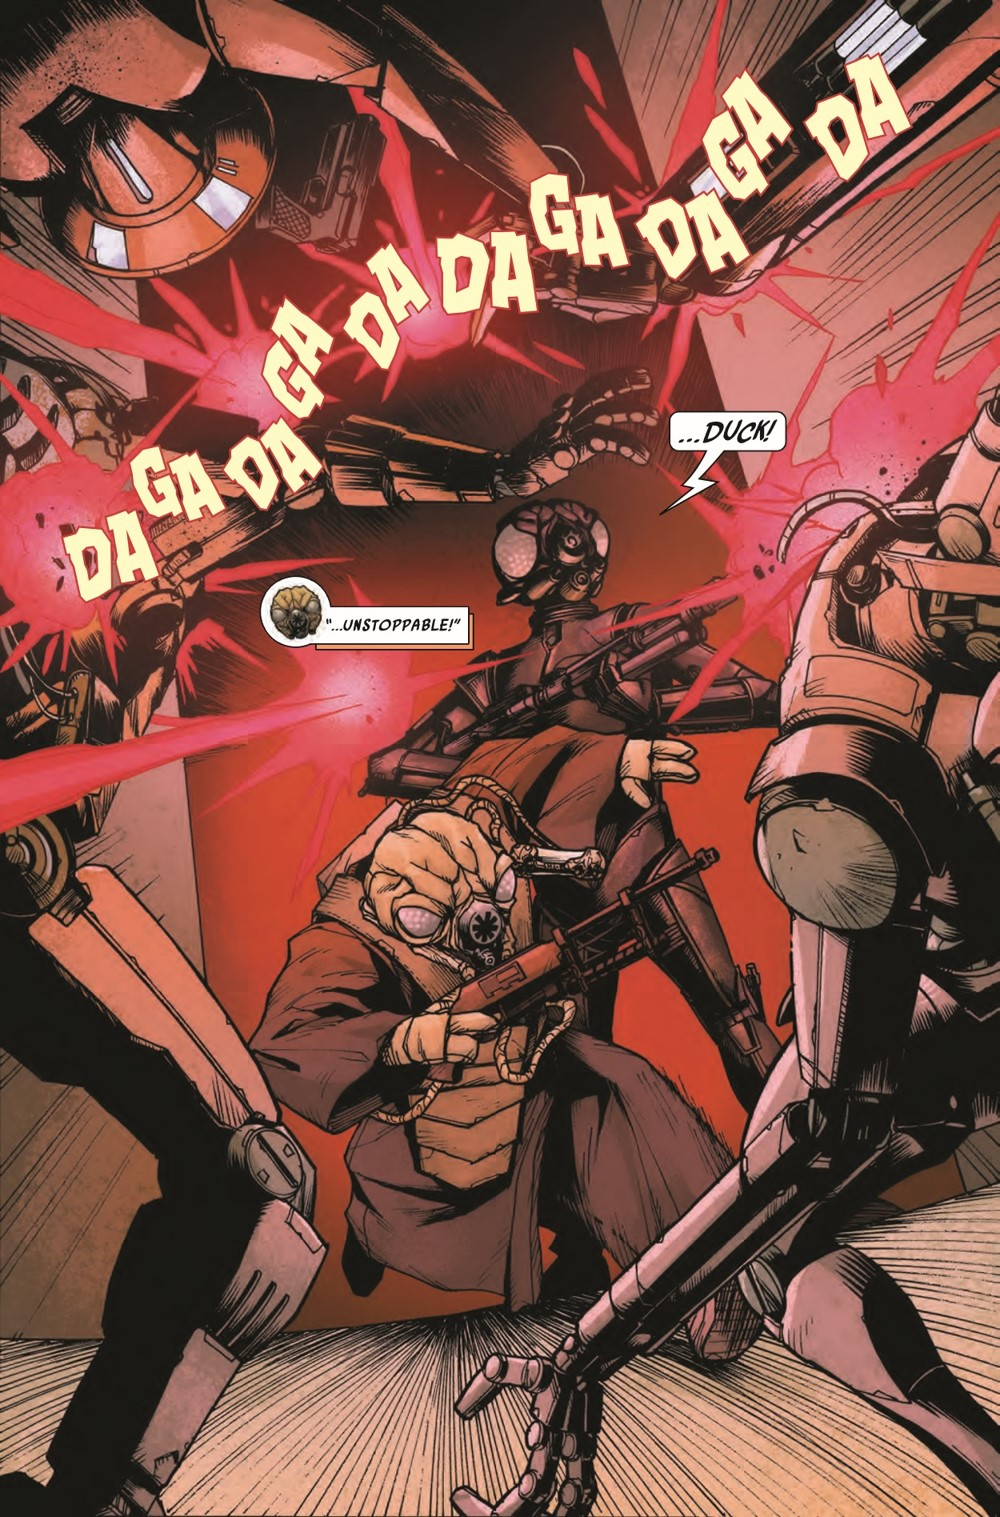 STWWAROTBH4LOMZUCK2021001_Preview-4 ComicList Previews: STAR WARS WAR OF THE BOUNTY HUNTERS 4-LOM AND ZUCKUSS #1